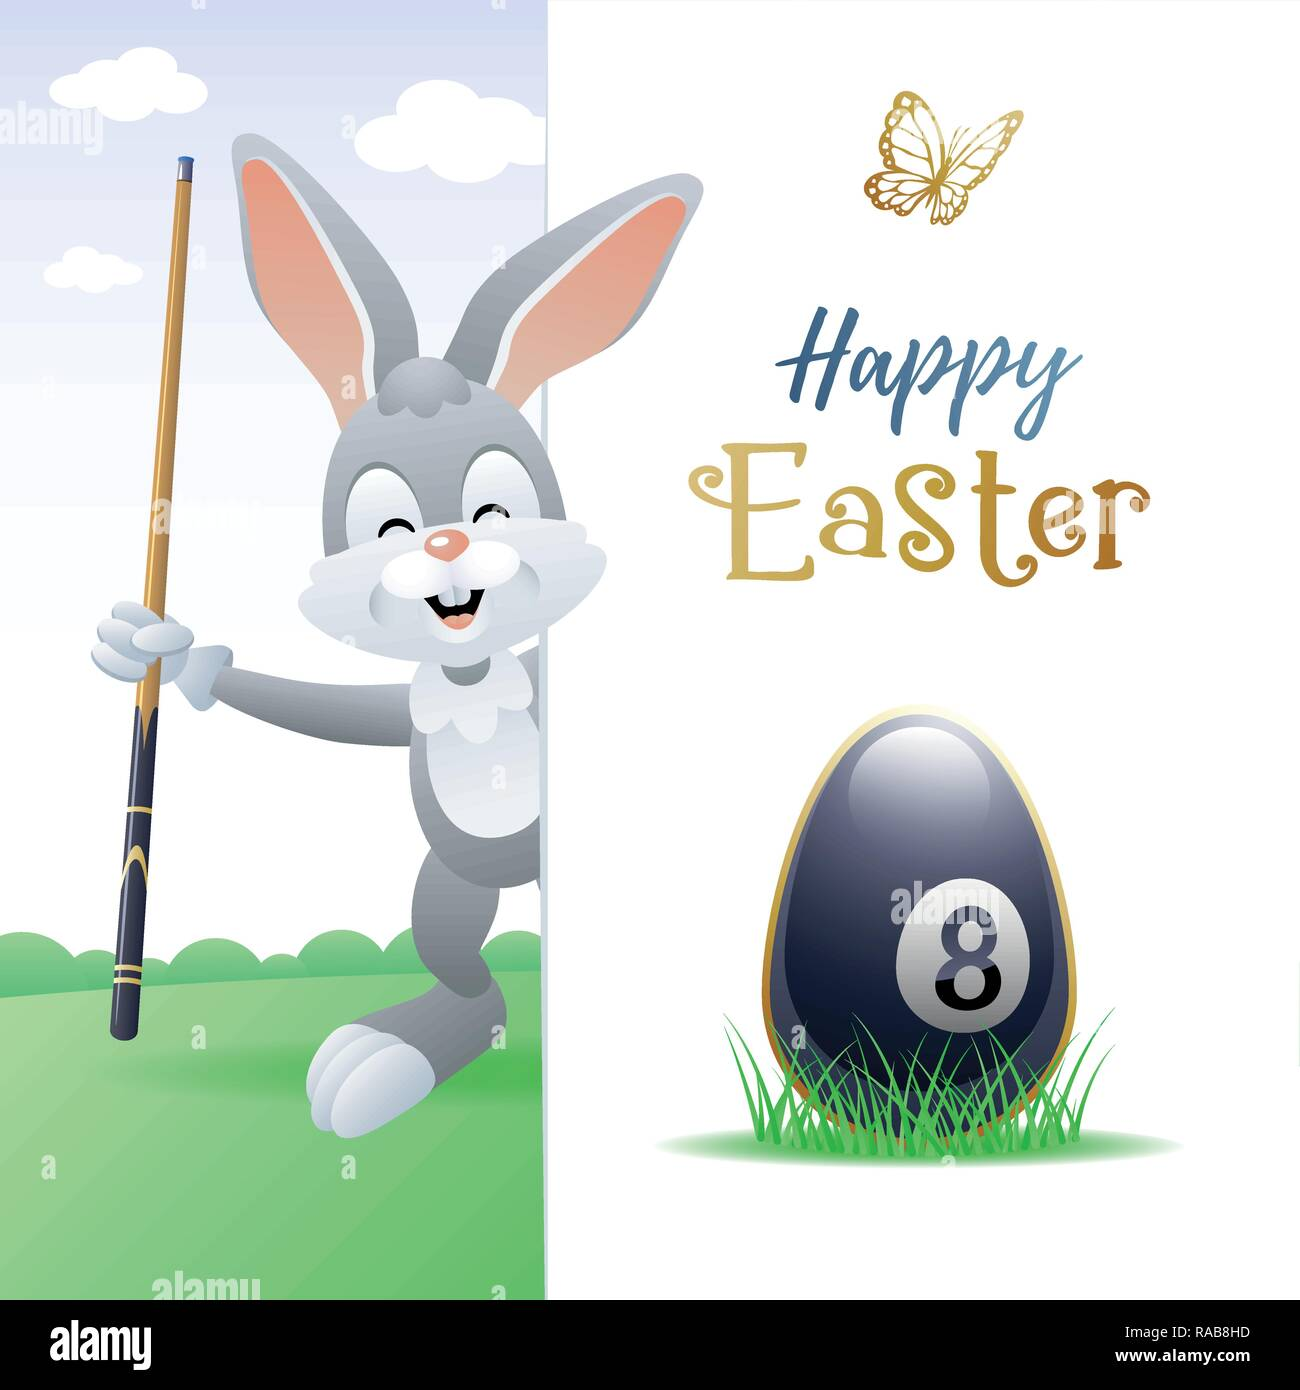 Happy Easter. Sports greeting card. Cute Rabbit with Billiard Egg and cue. Vector illustration. - Stock Image